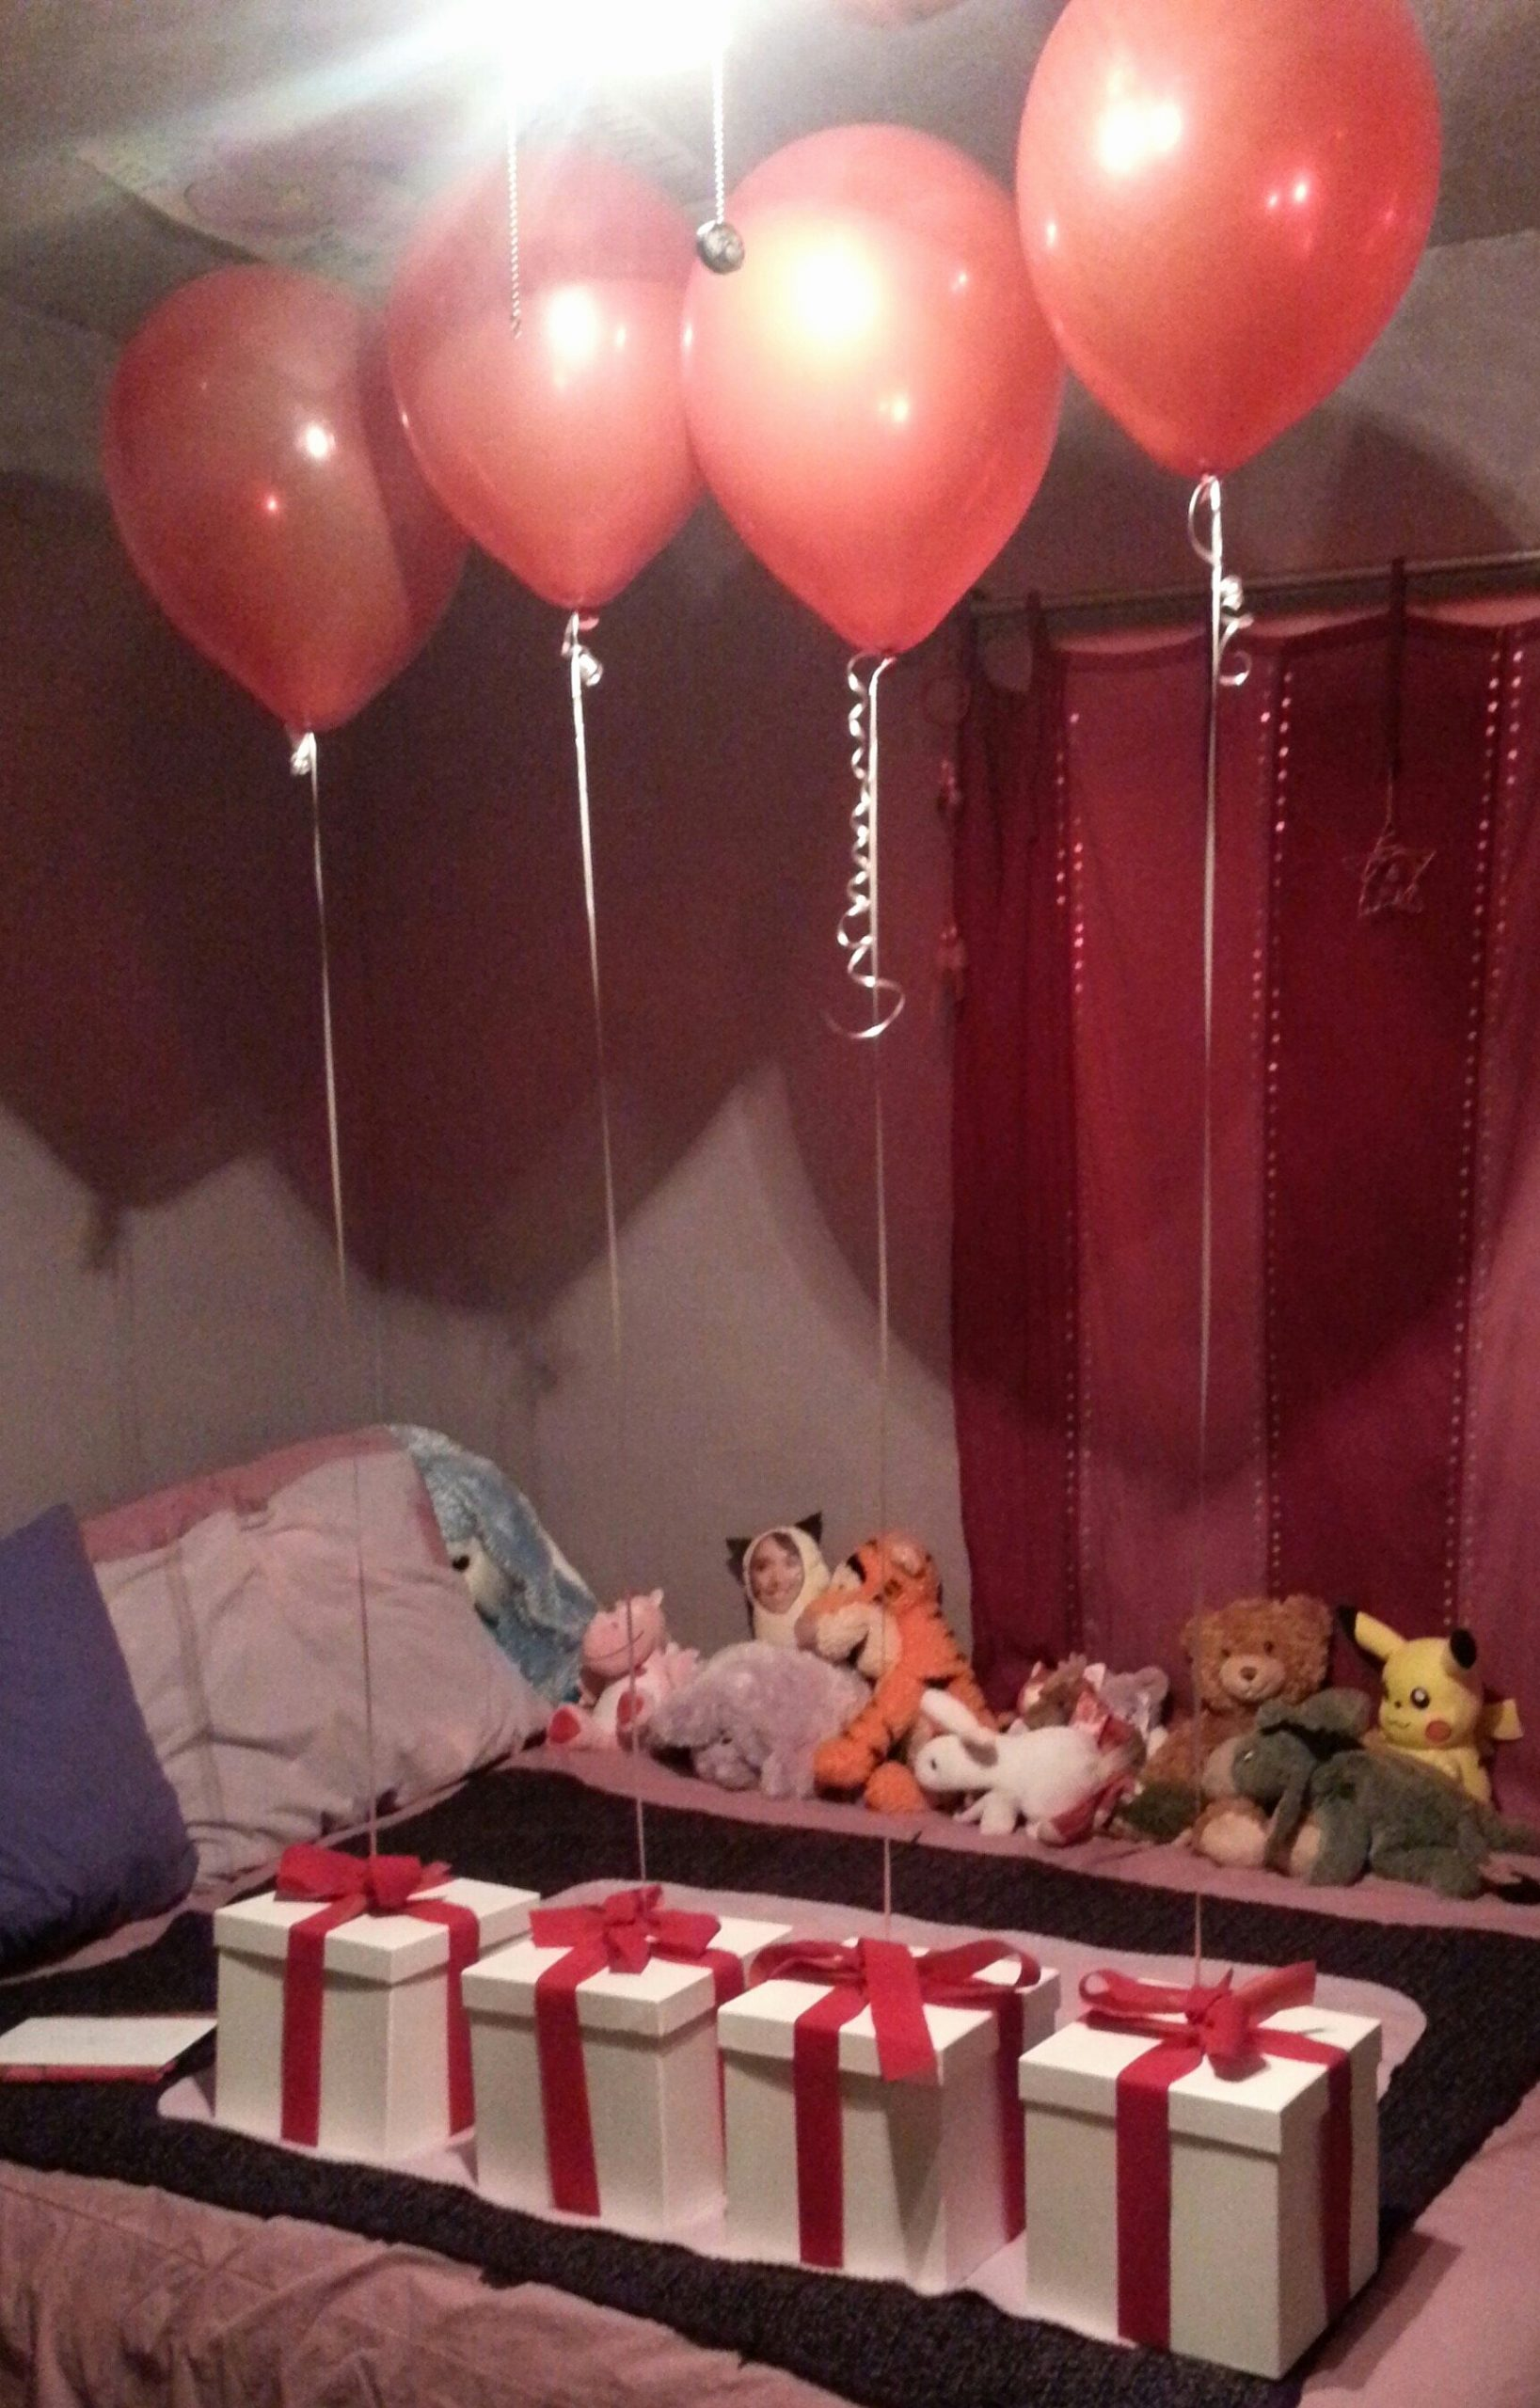 Birthday Decoration Ideas for Wife Inspirational 10 Most Re Mended Romantic Ideas for Wife Birthday